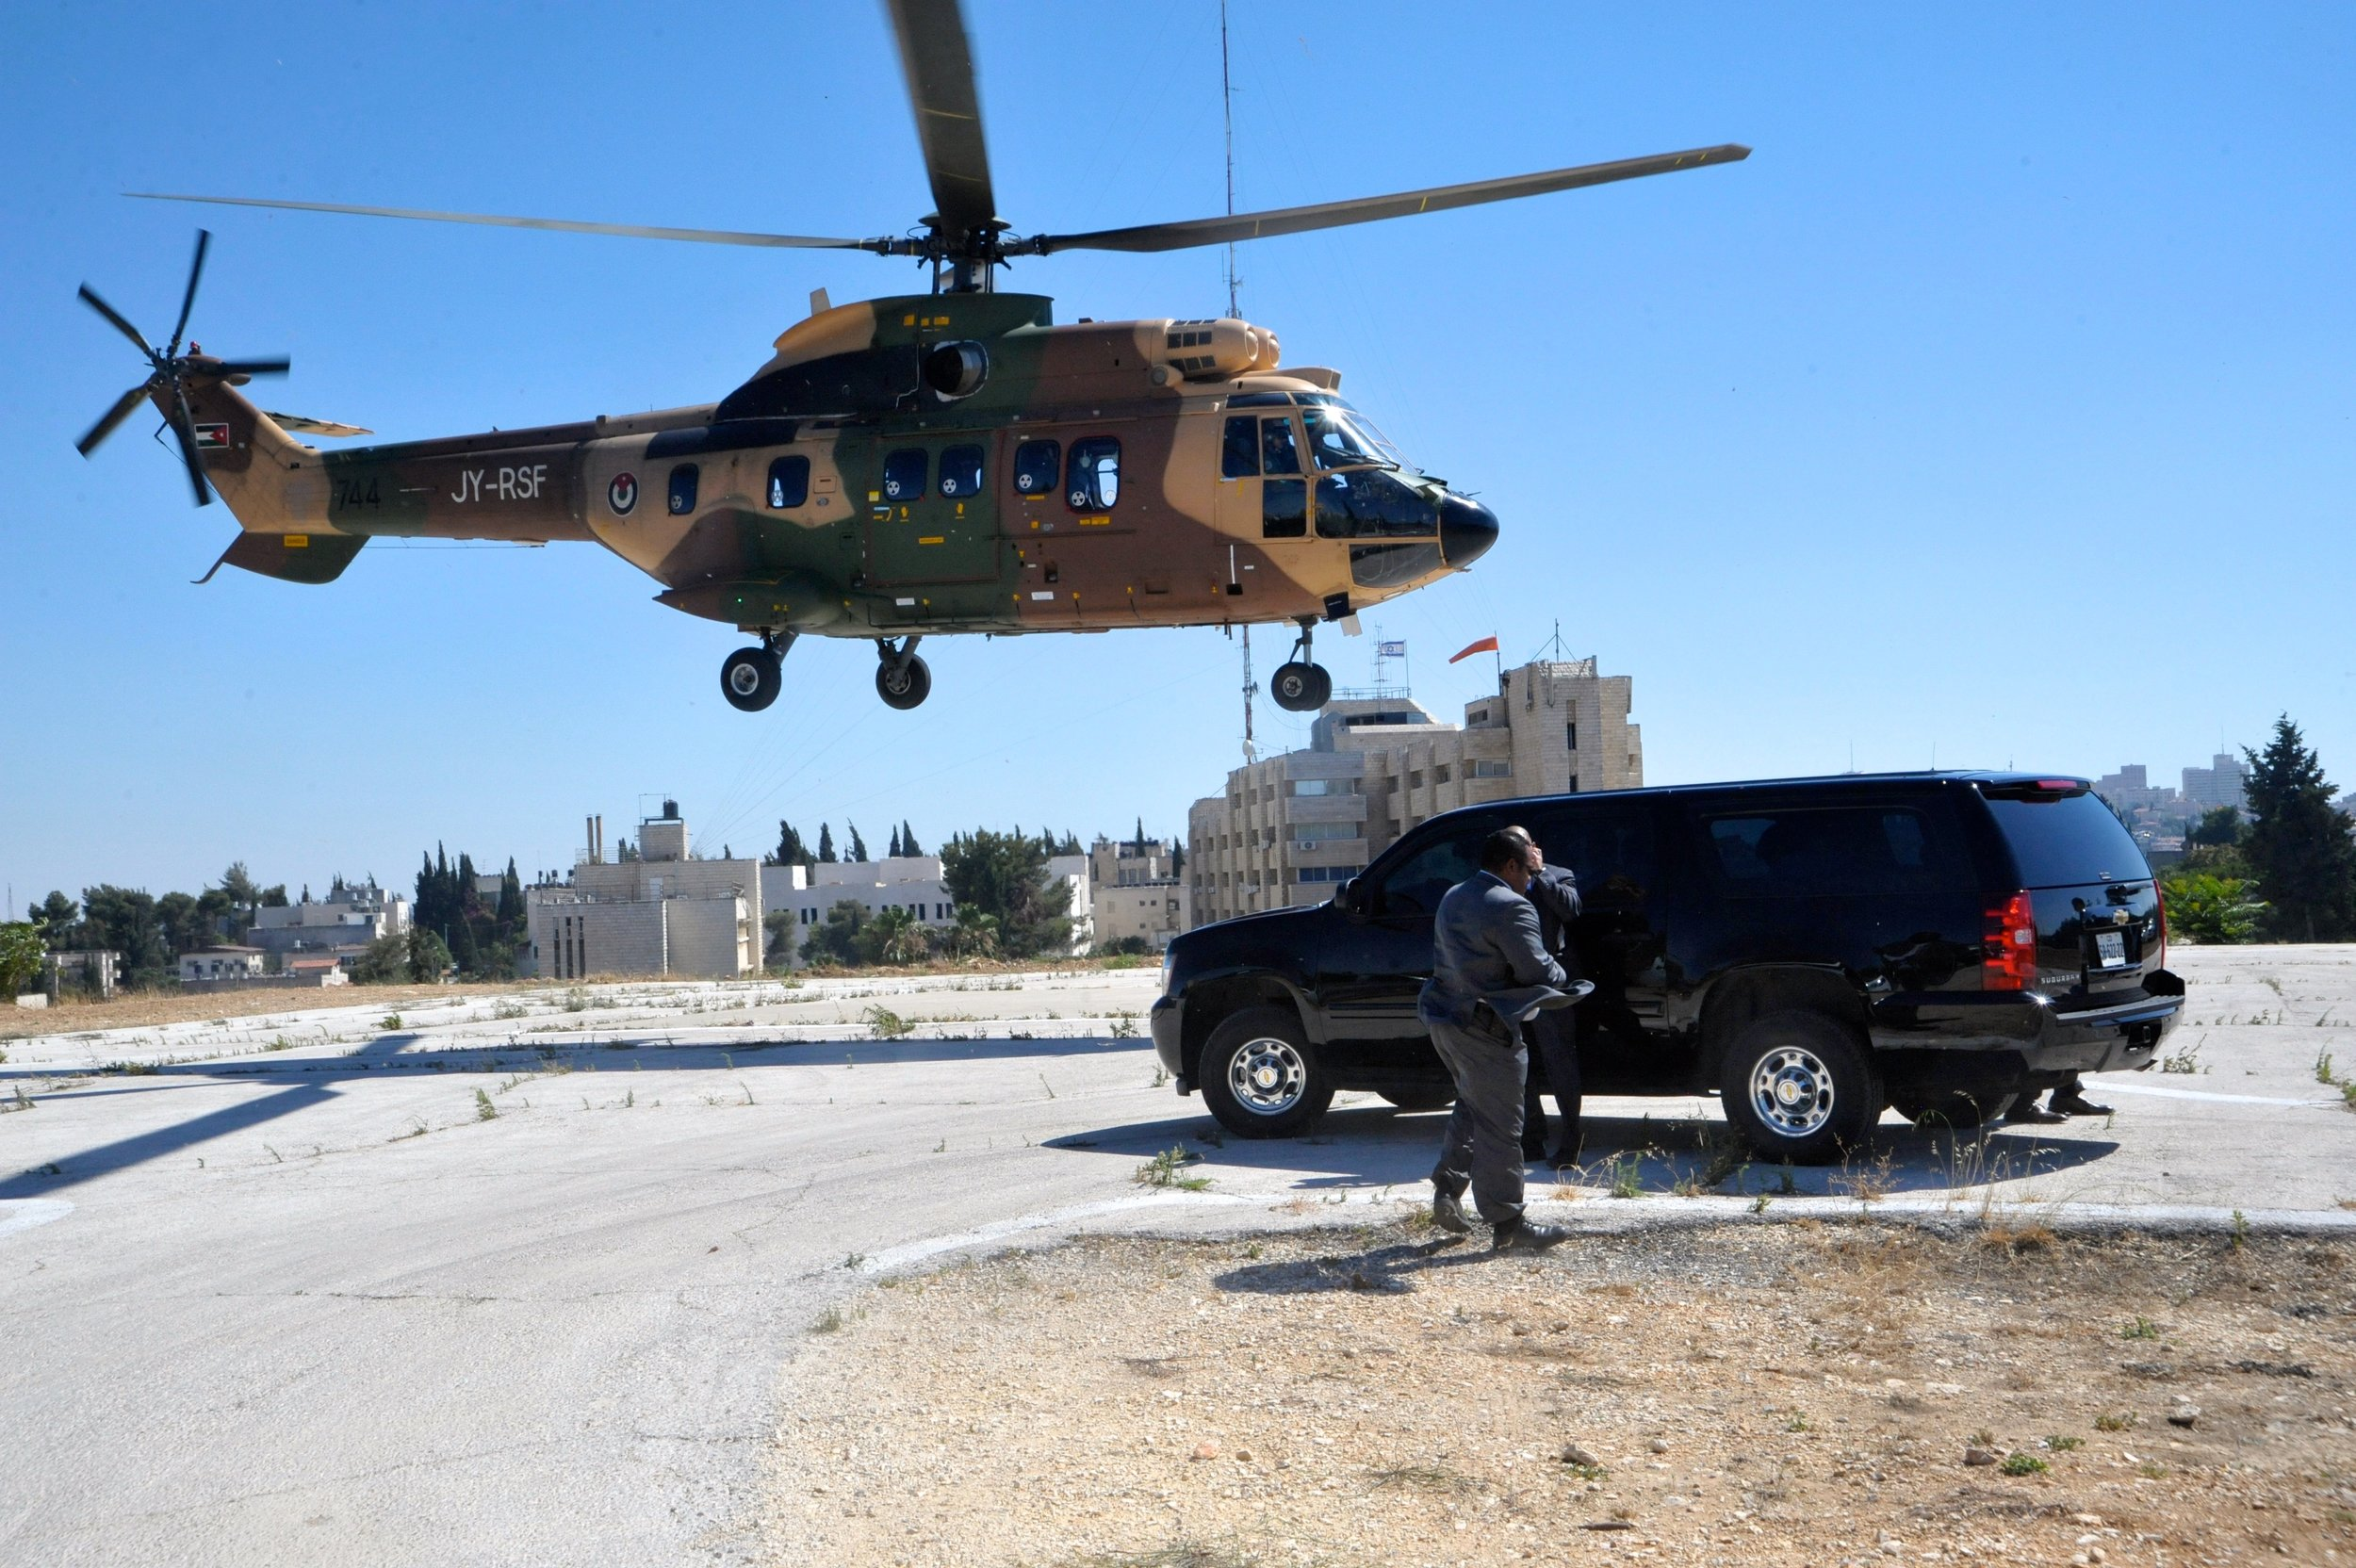 A Jordanian helicopter used to facilitate travel between Amman and Jerusalem and the West Bank.